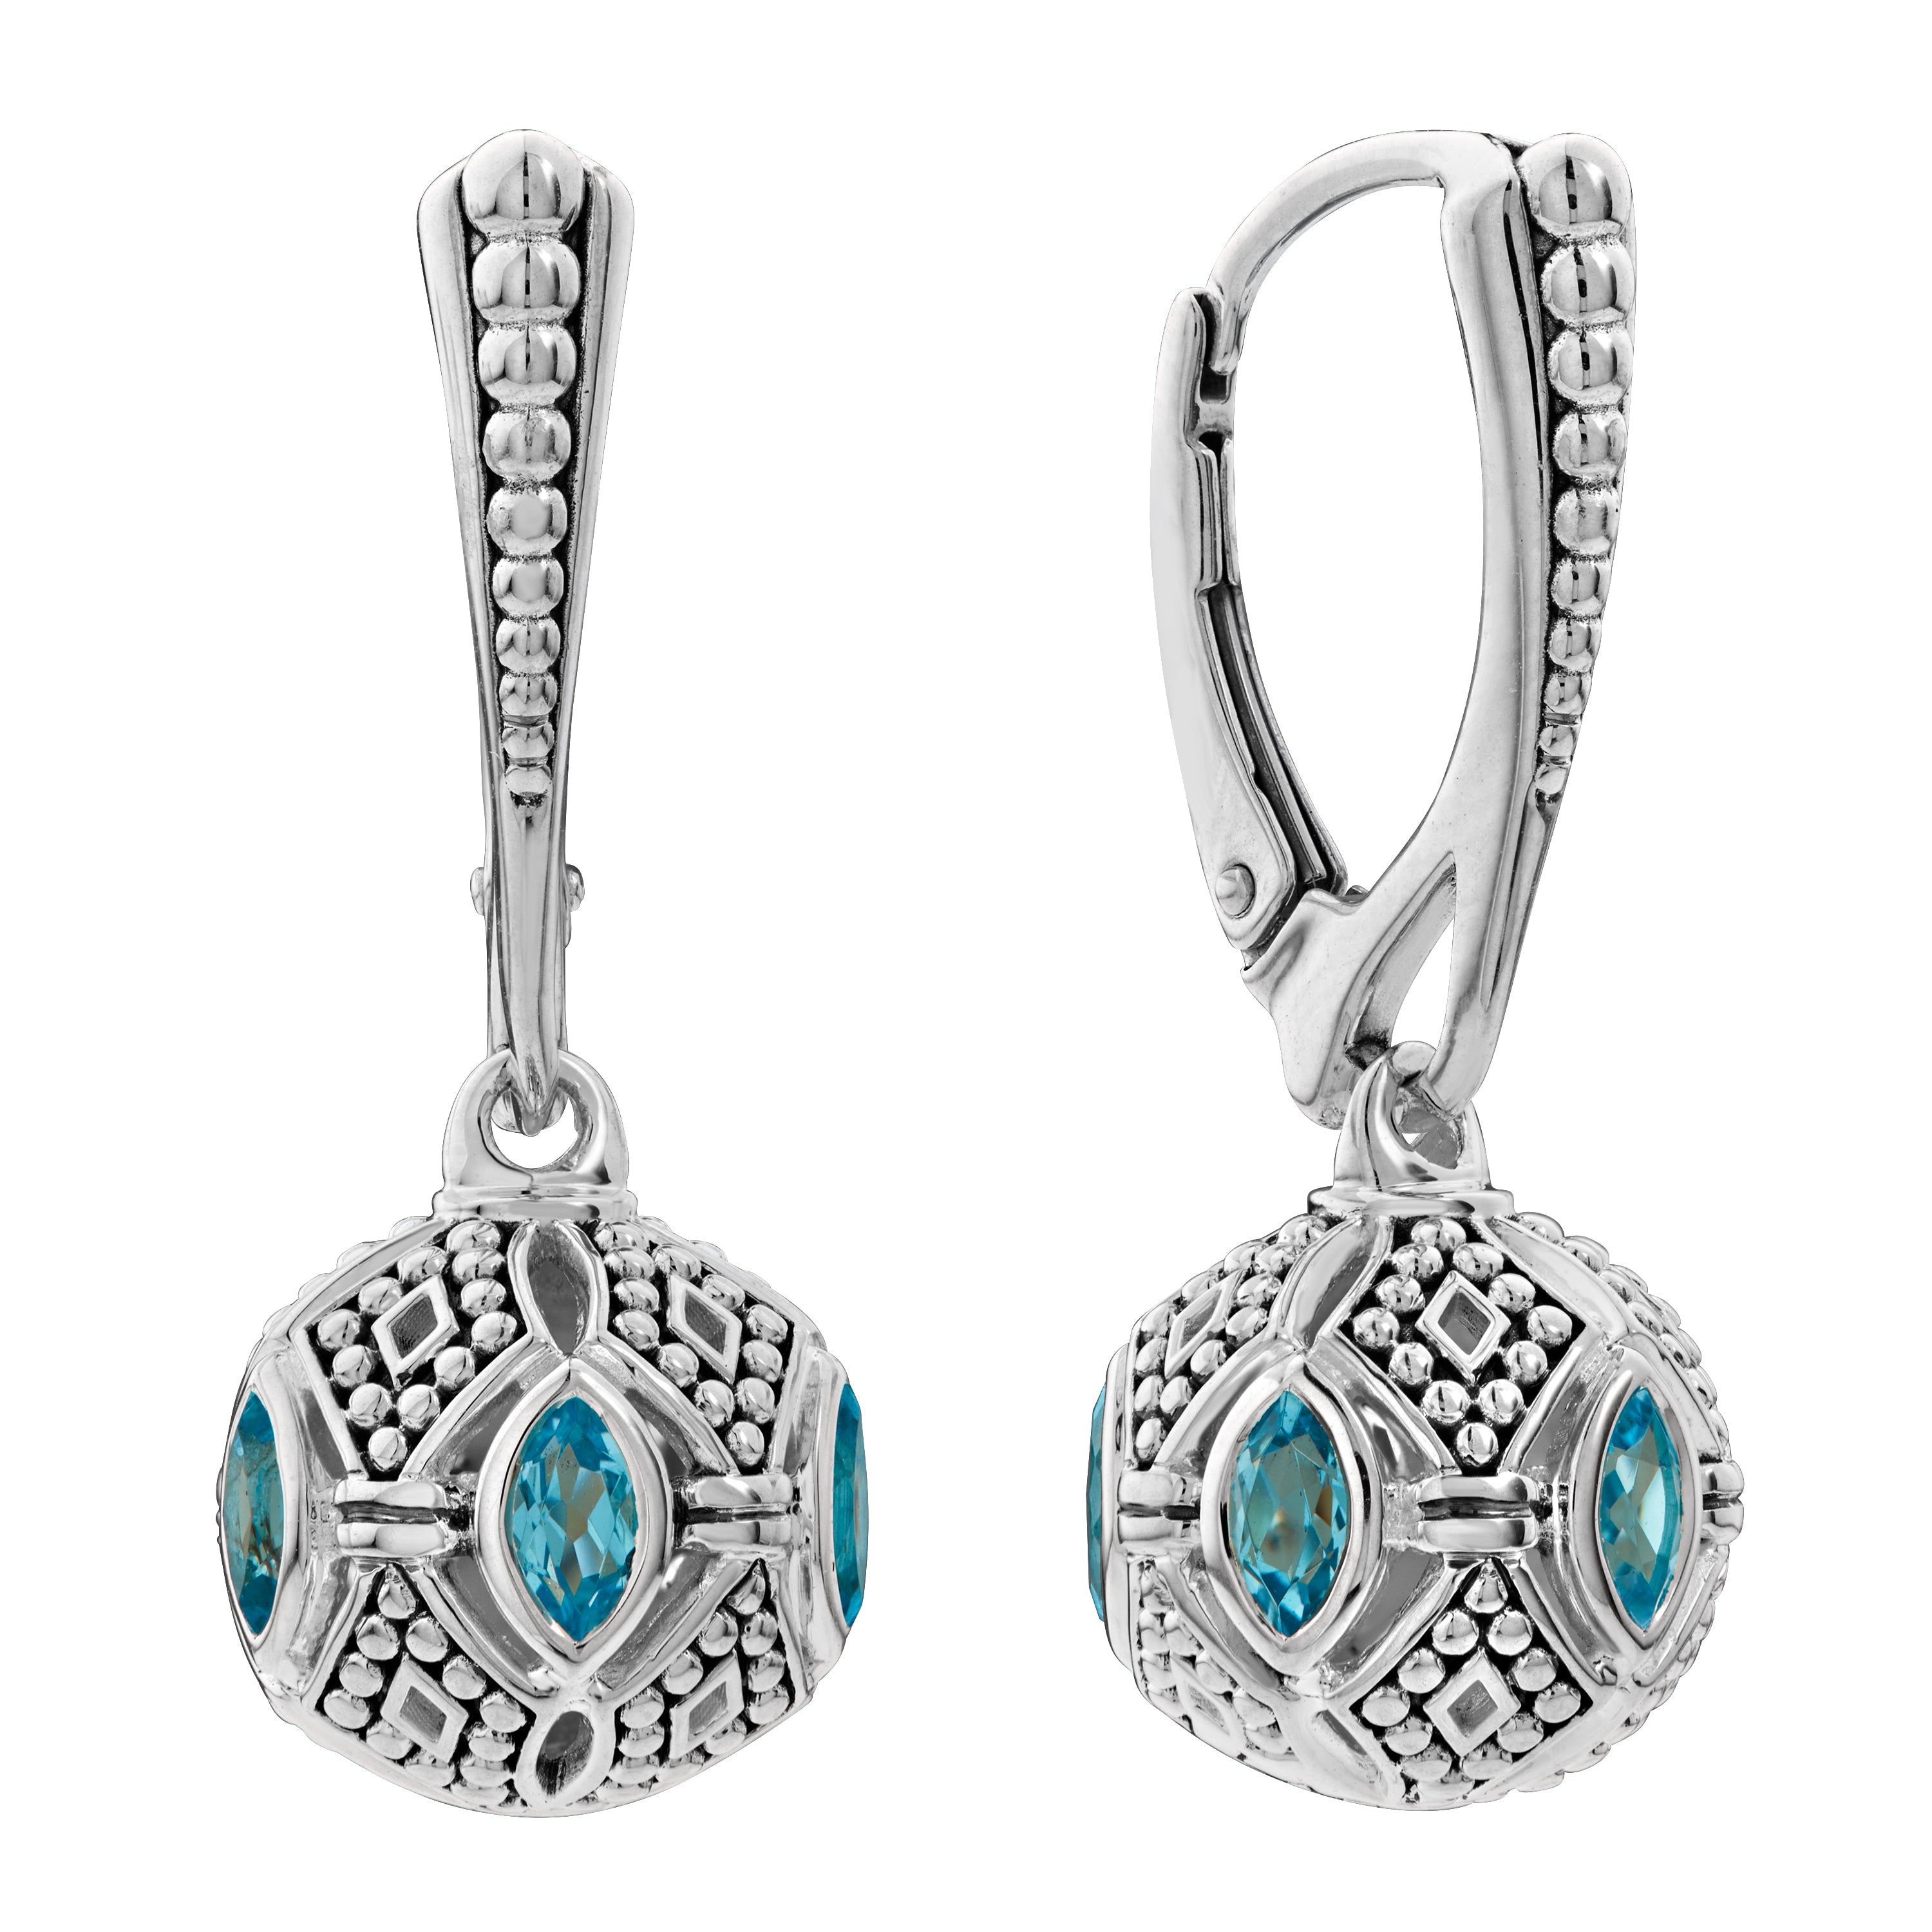 Lagos 'Caviar Talisman' Blue Topaz Drop Earrings